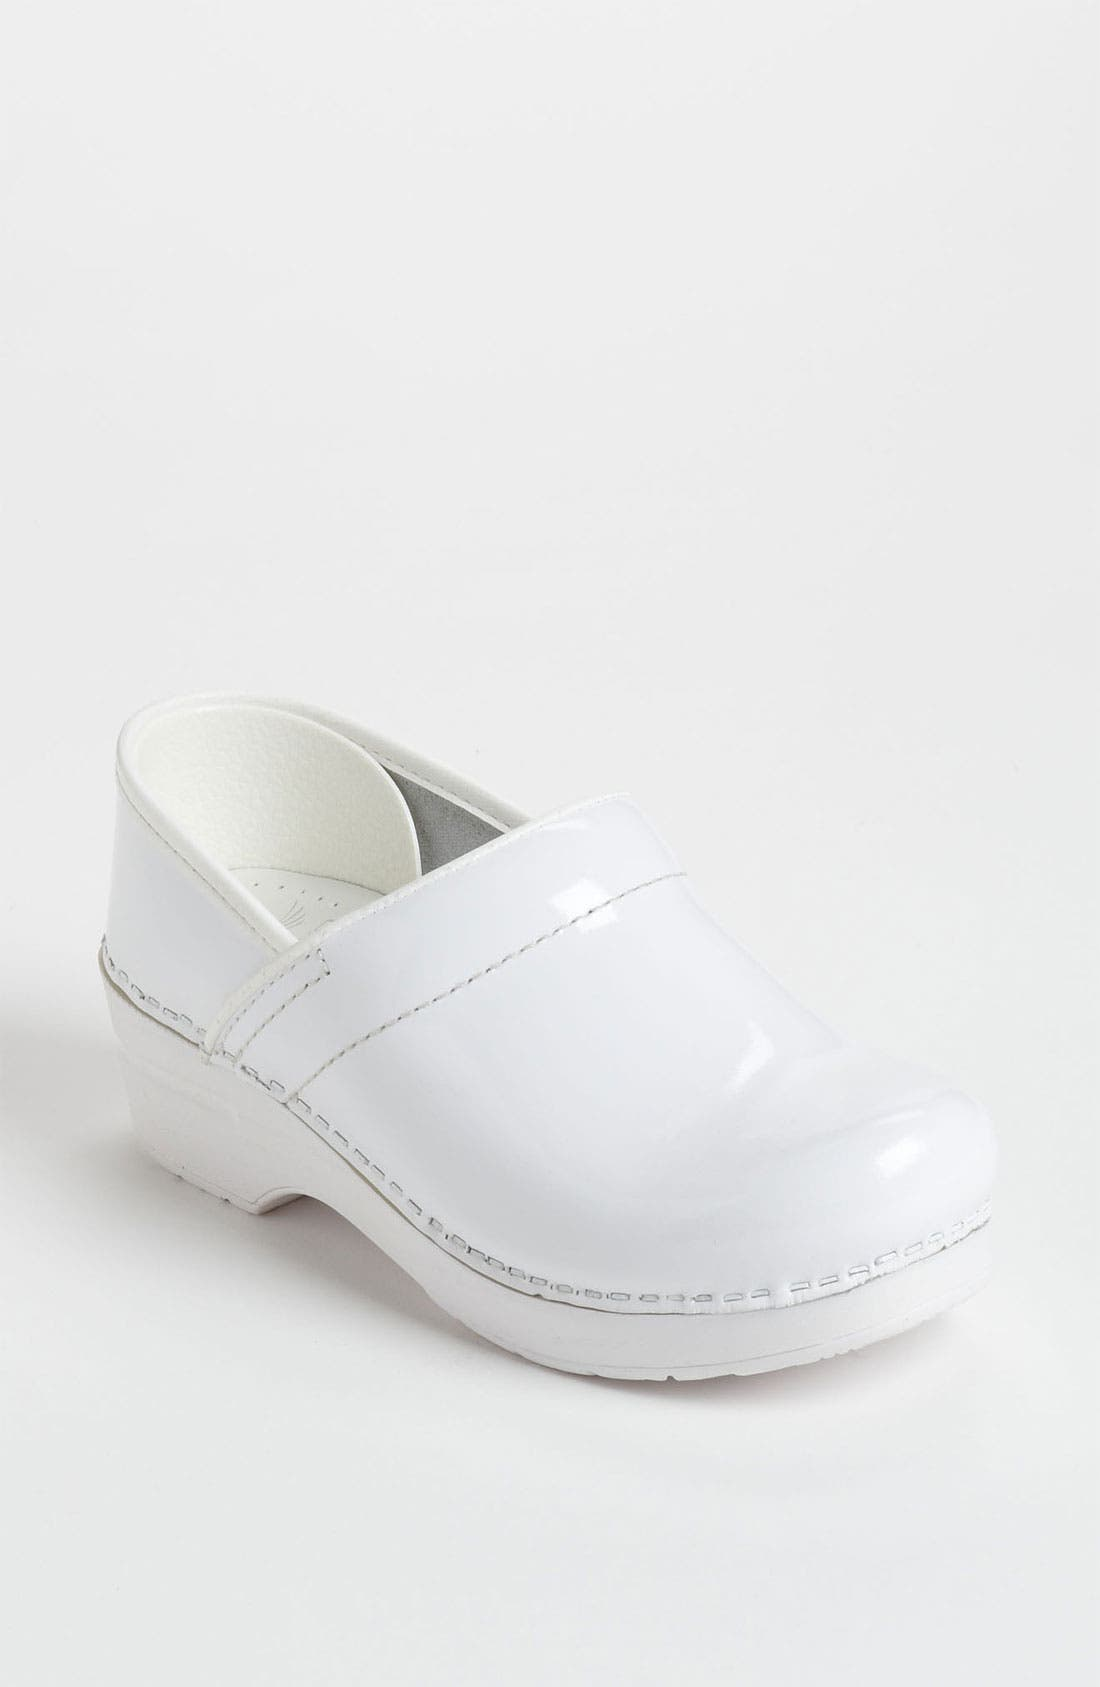 'Professional' Clog,                             Main thumbnail 1, color,                             White Patent